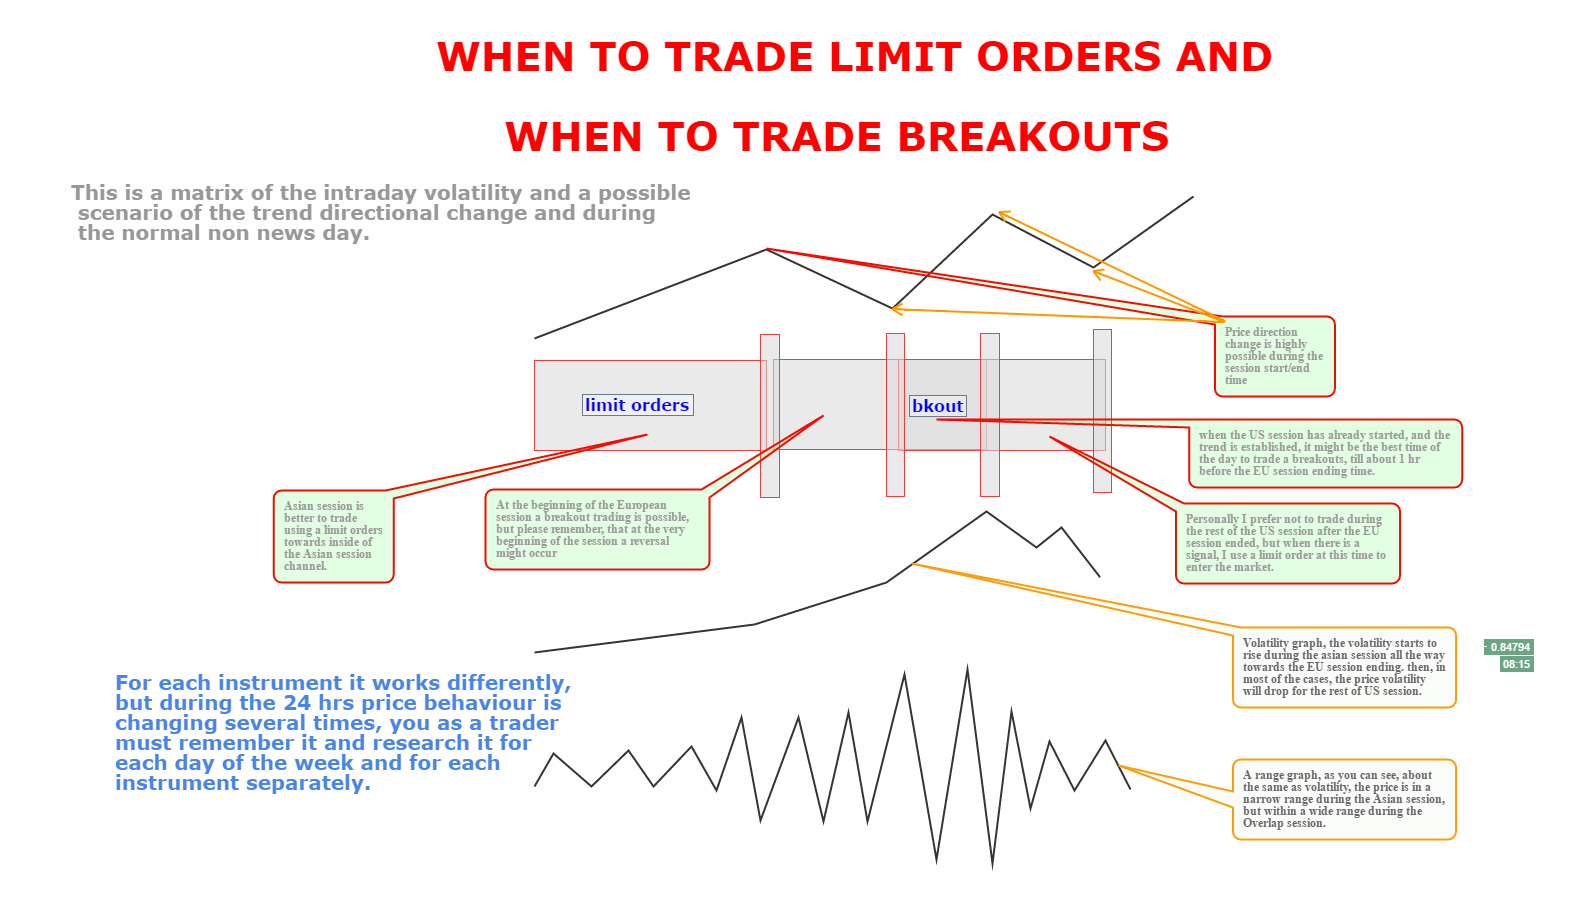 WHEN TO TRADE LIMIT ORDERS AND WHEN TO TRADE BREAKOUTS